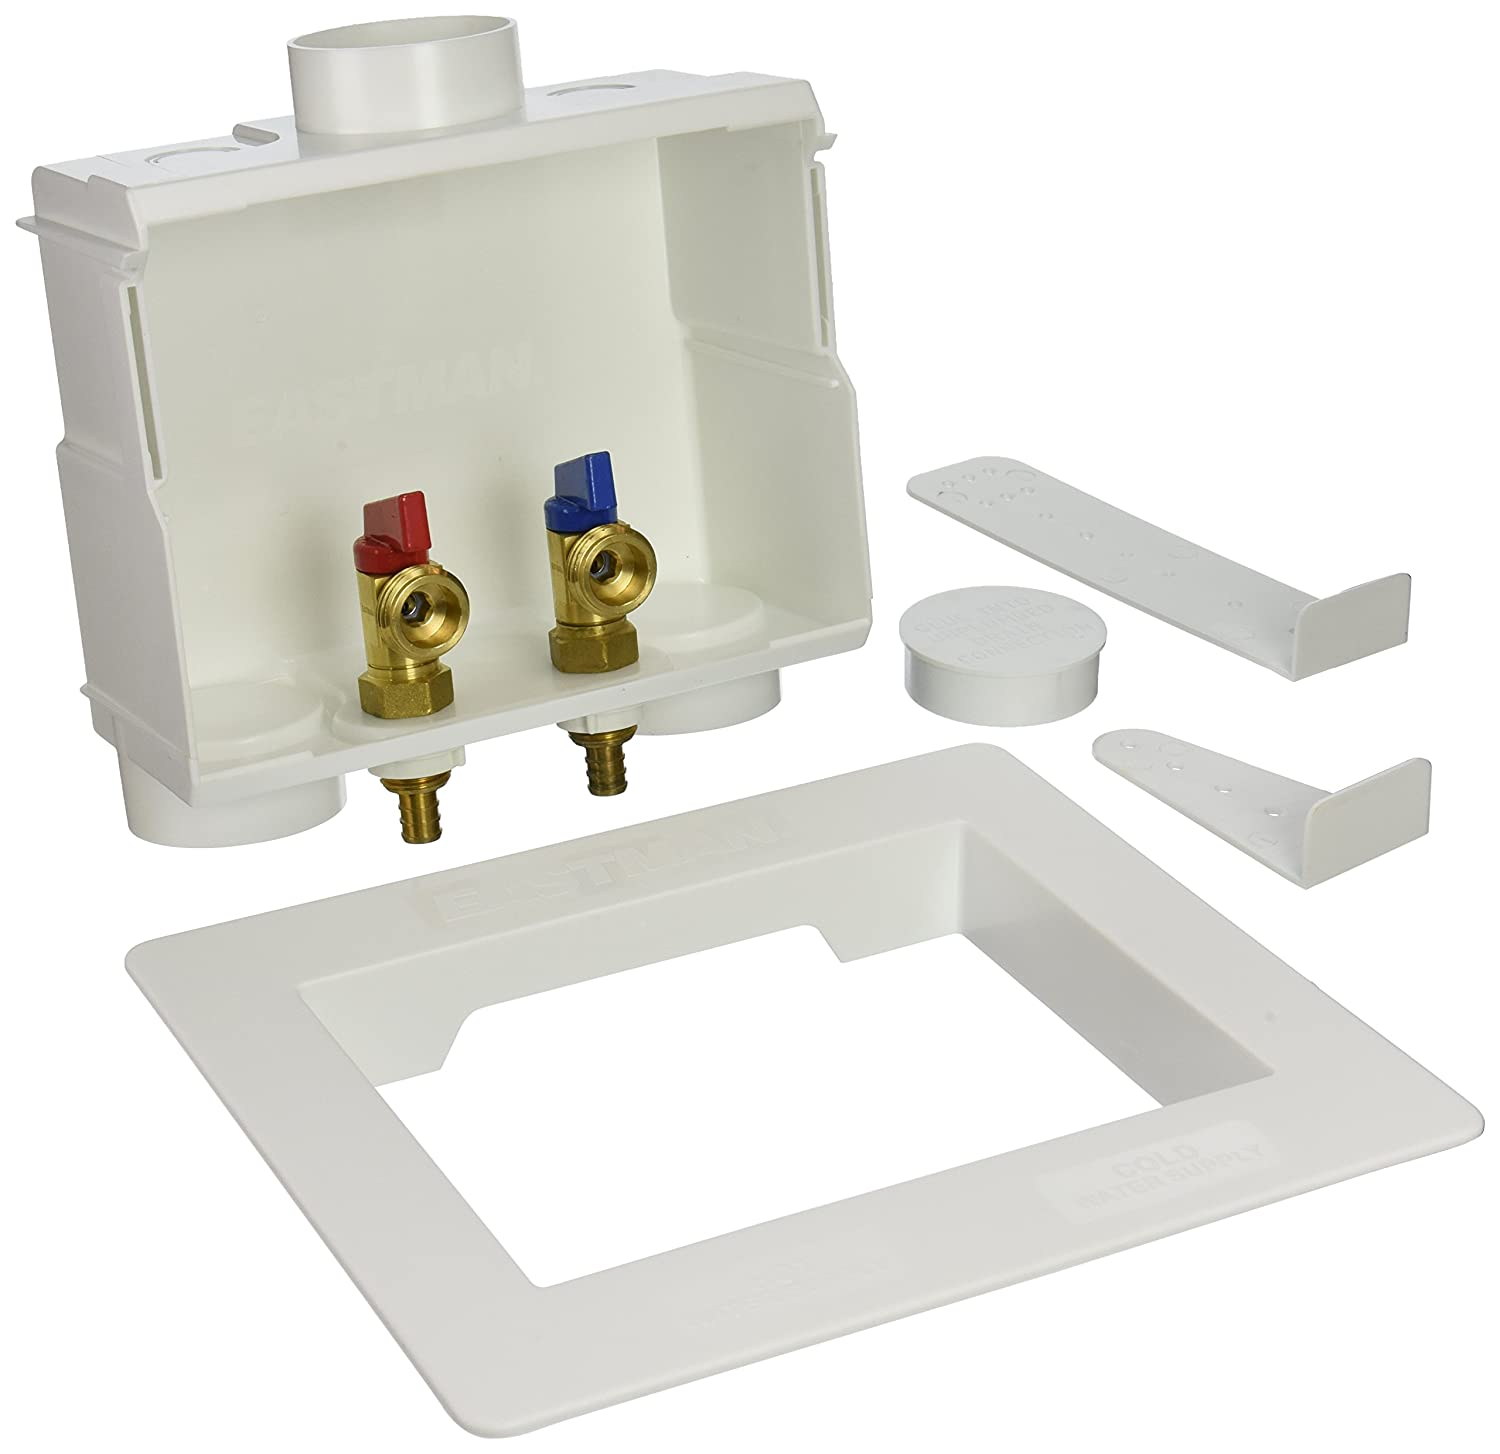 "Eastman 60245 Crimp PEX Dual Washing Machine Outlet Box 1/2"" Connection White"